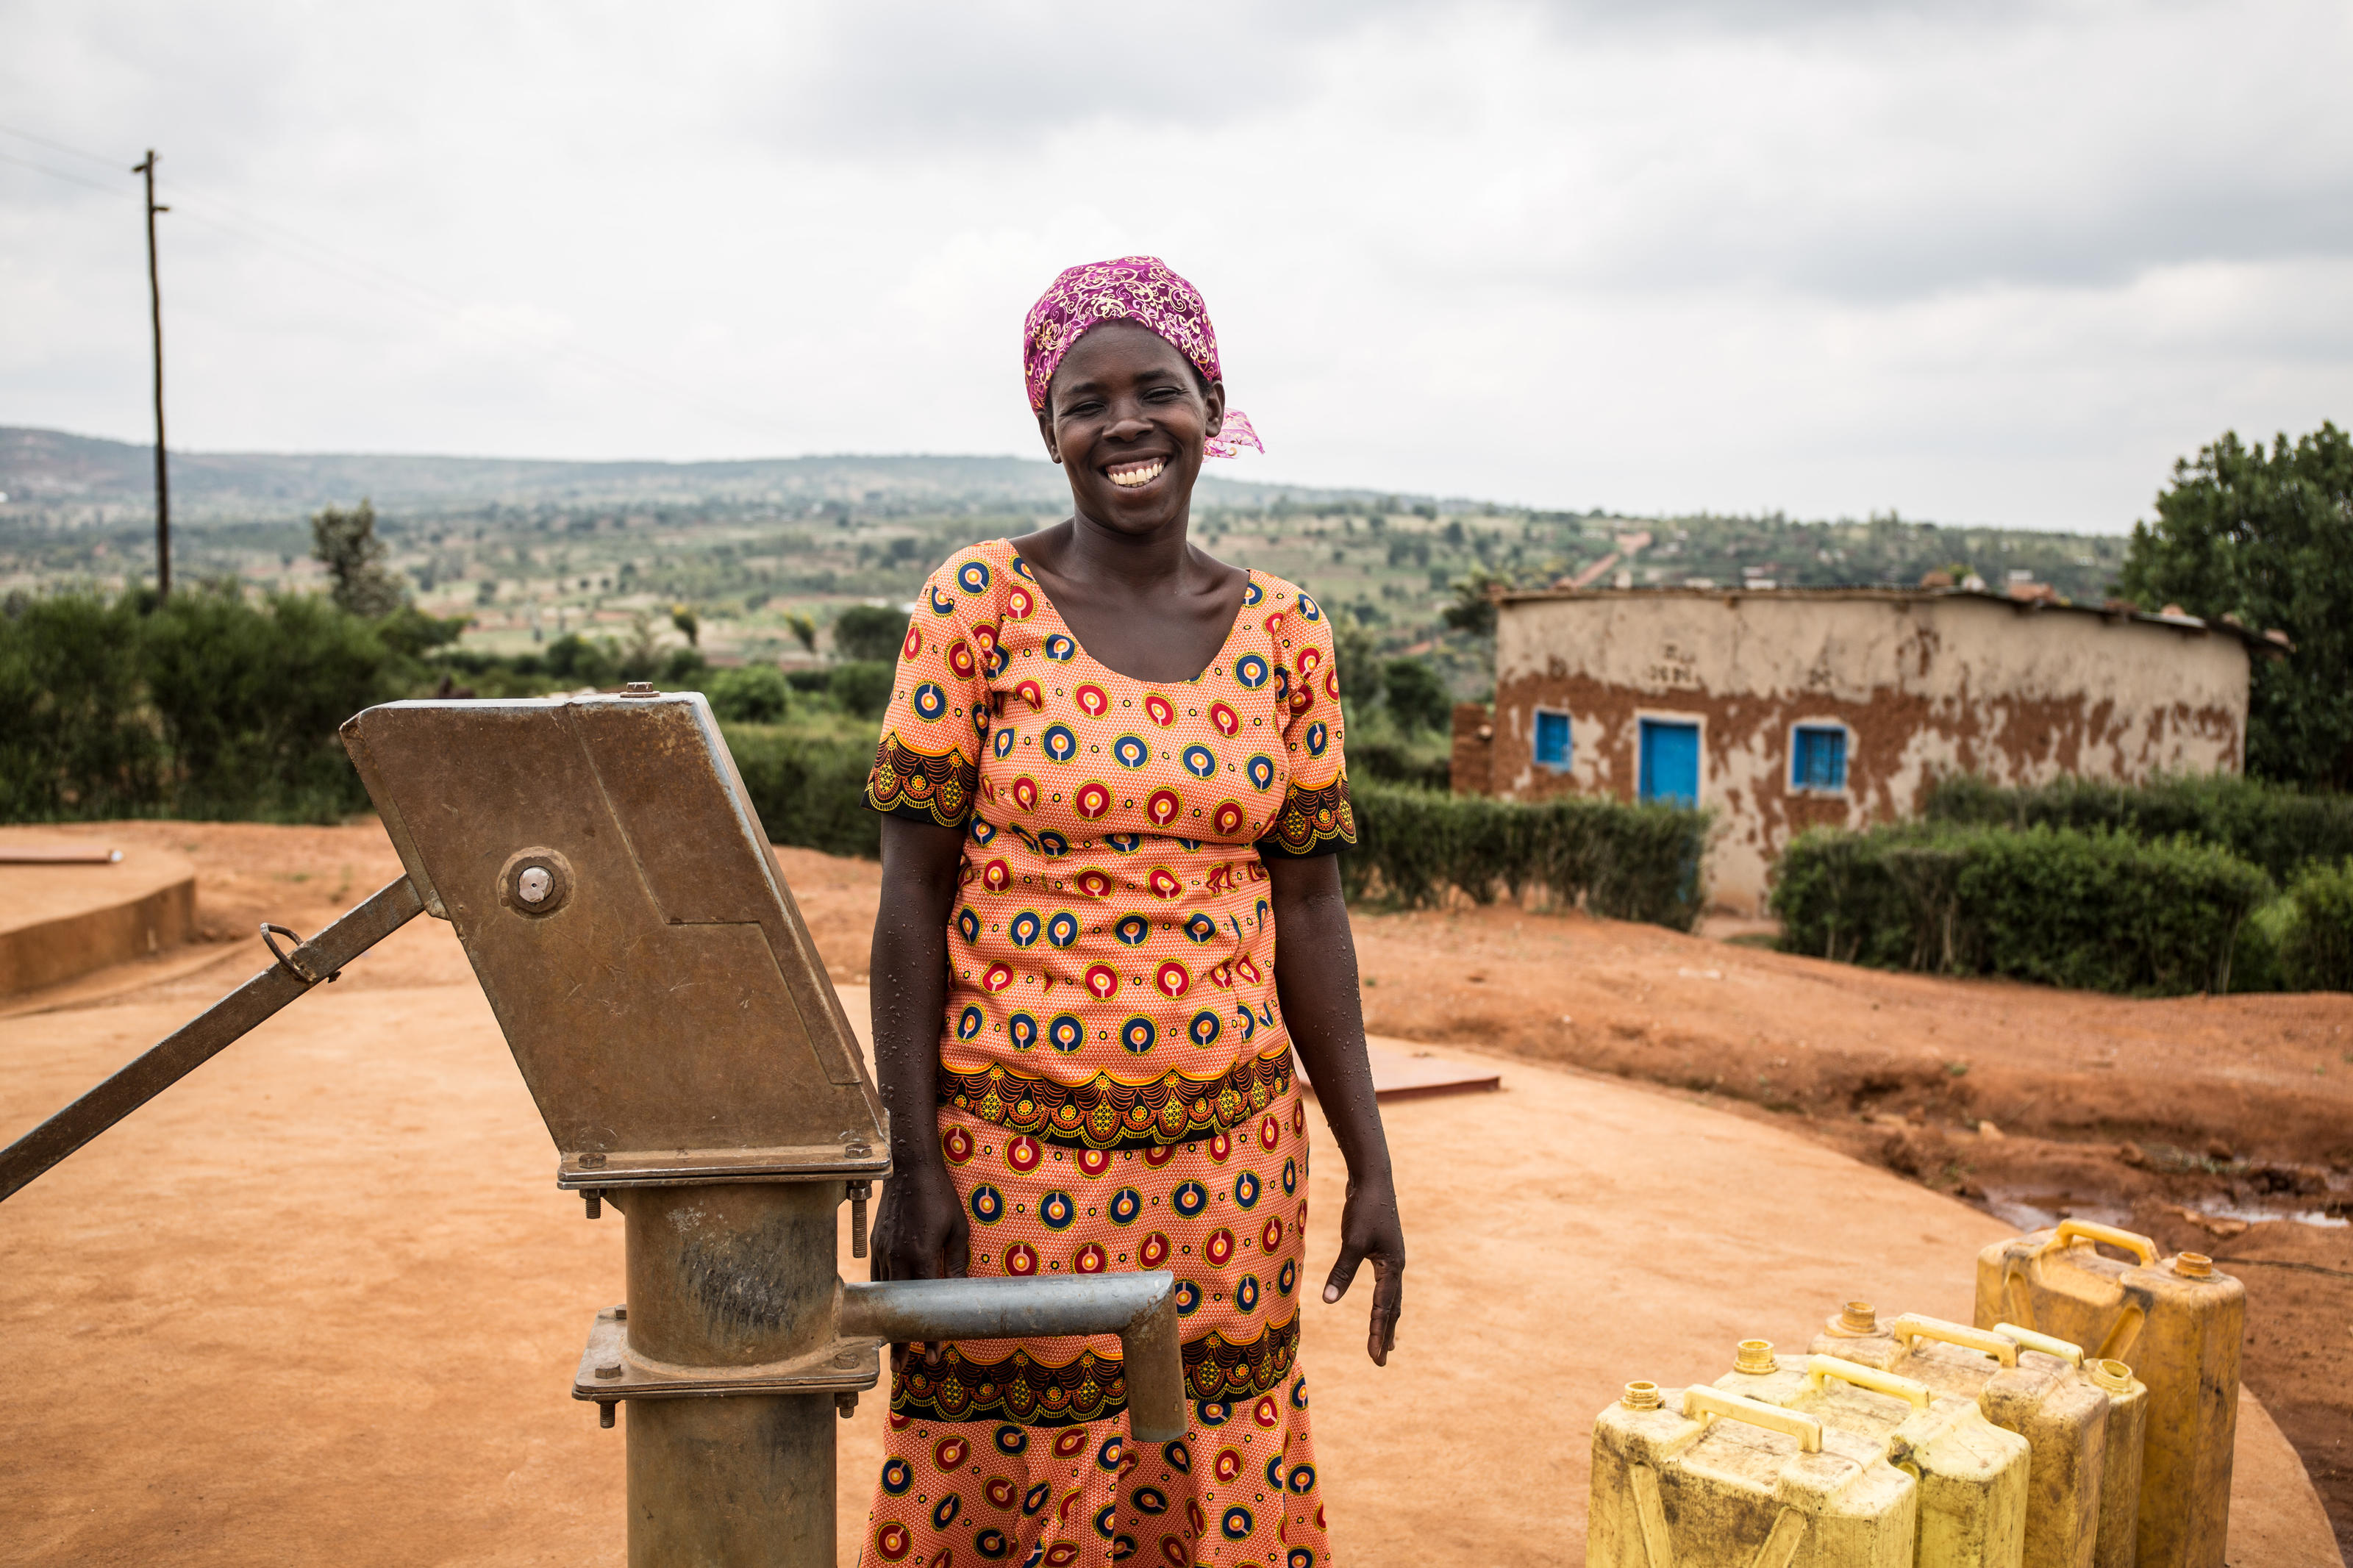 A WaterAid trained pump mechance and local leader, Gaudence Mukahabyarimana, stands next to a handpump in one of the newly built model villages, Nkange, Rwanda, February 2018.